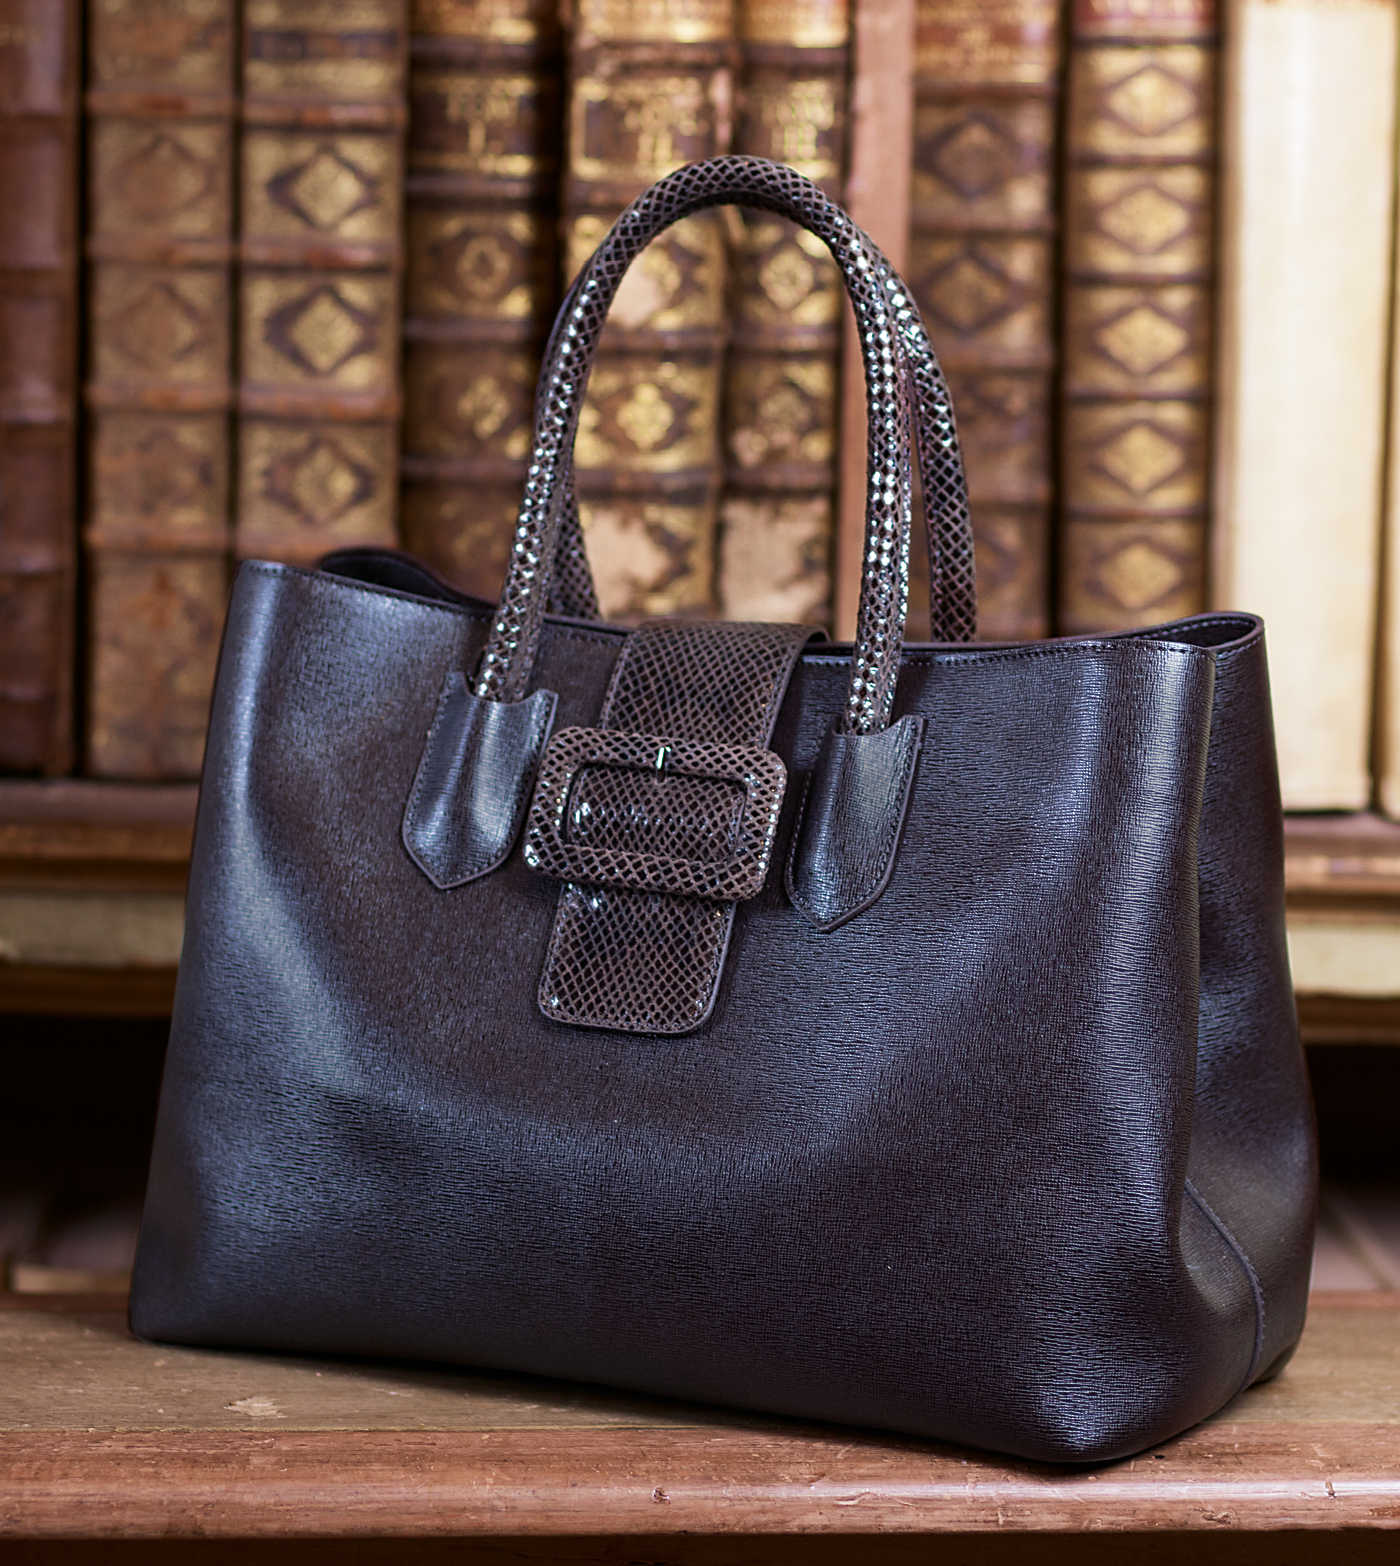 bags-aw1920-00001